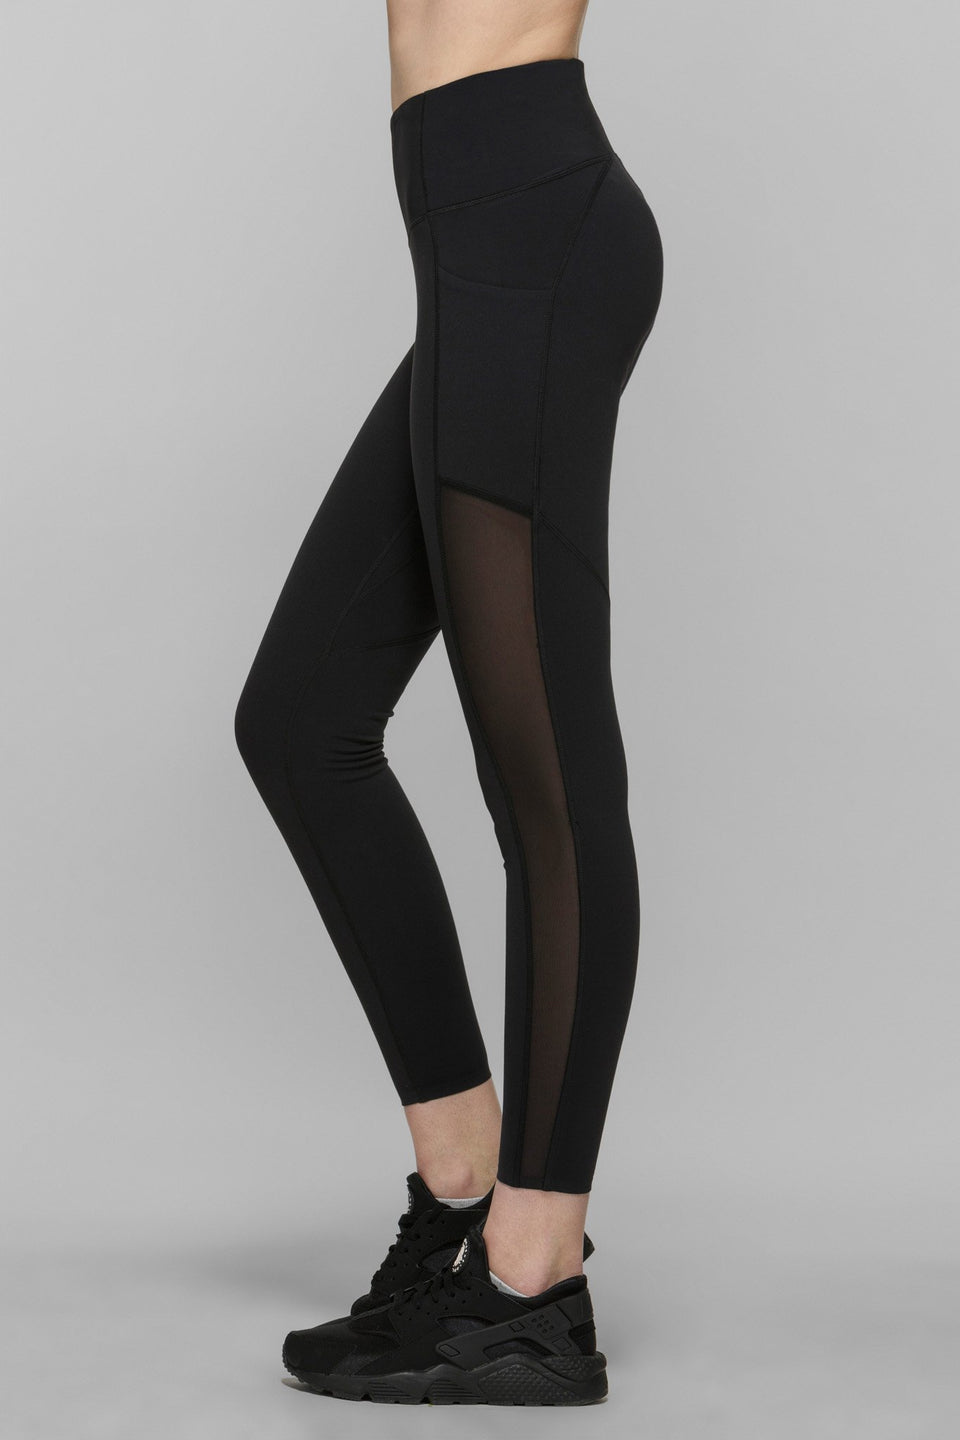 Compress Mesh Crop Leggings